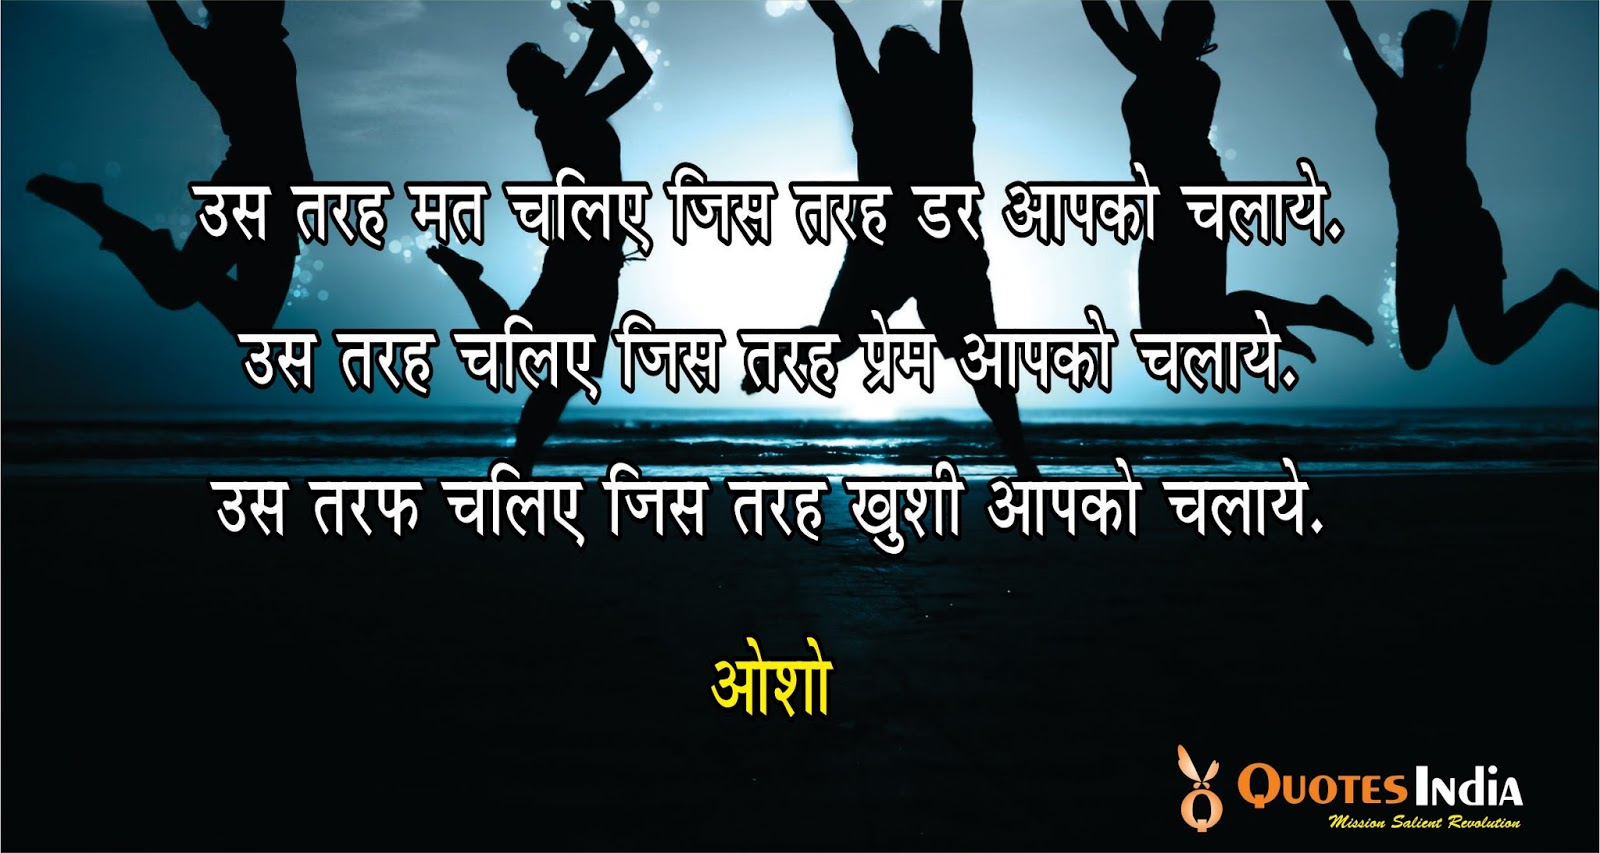 Hindi Quotes Osho Quotes India Quotes Health Tips Yoga